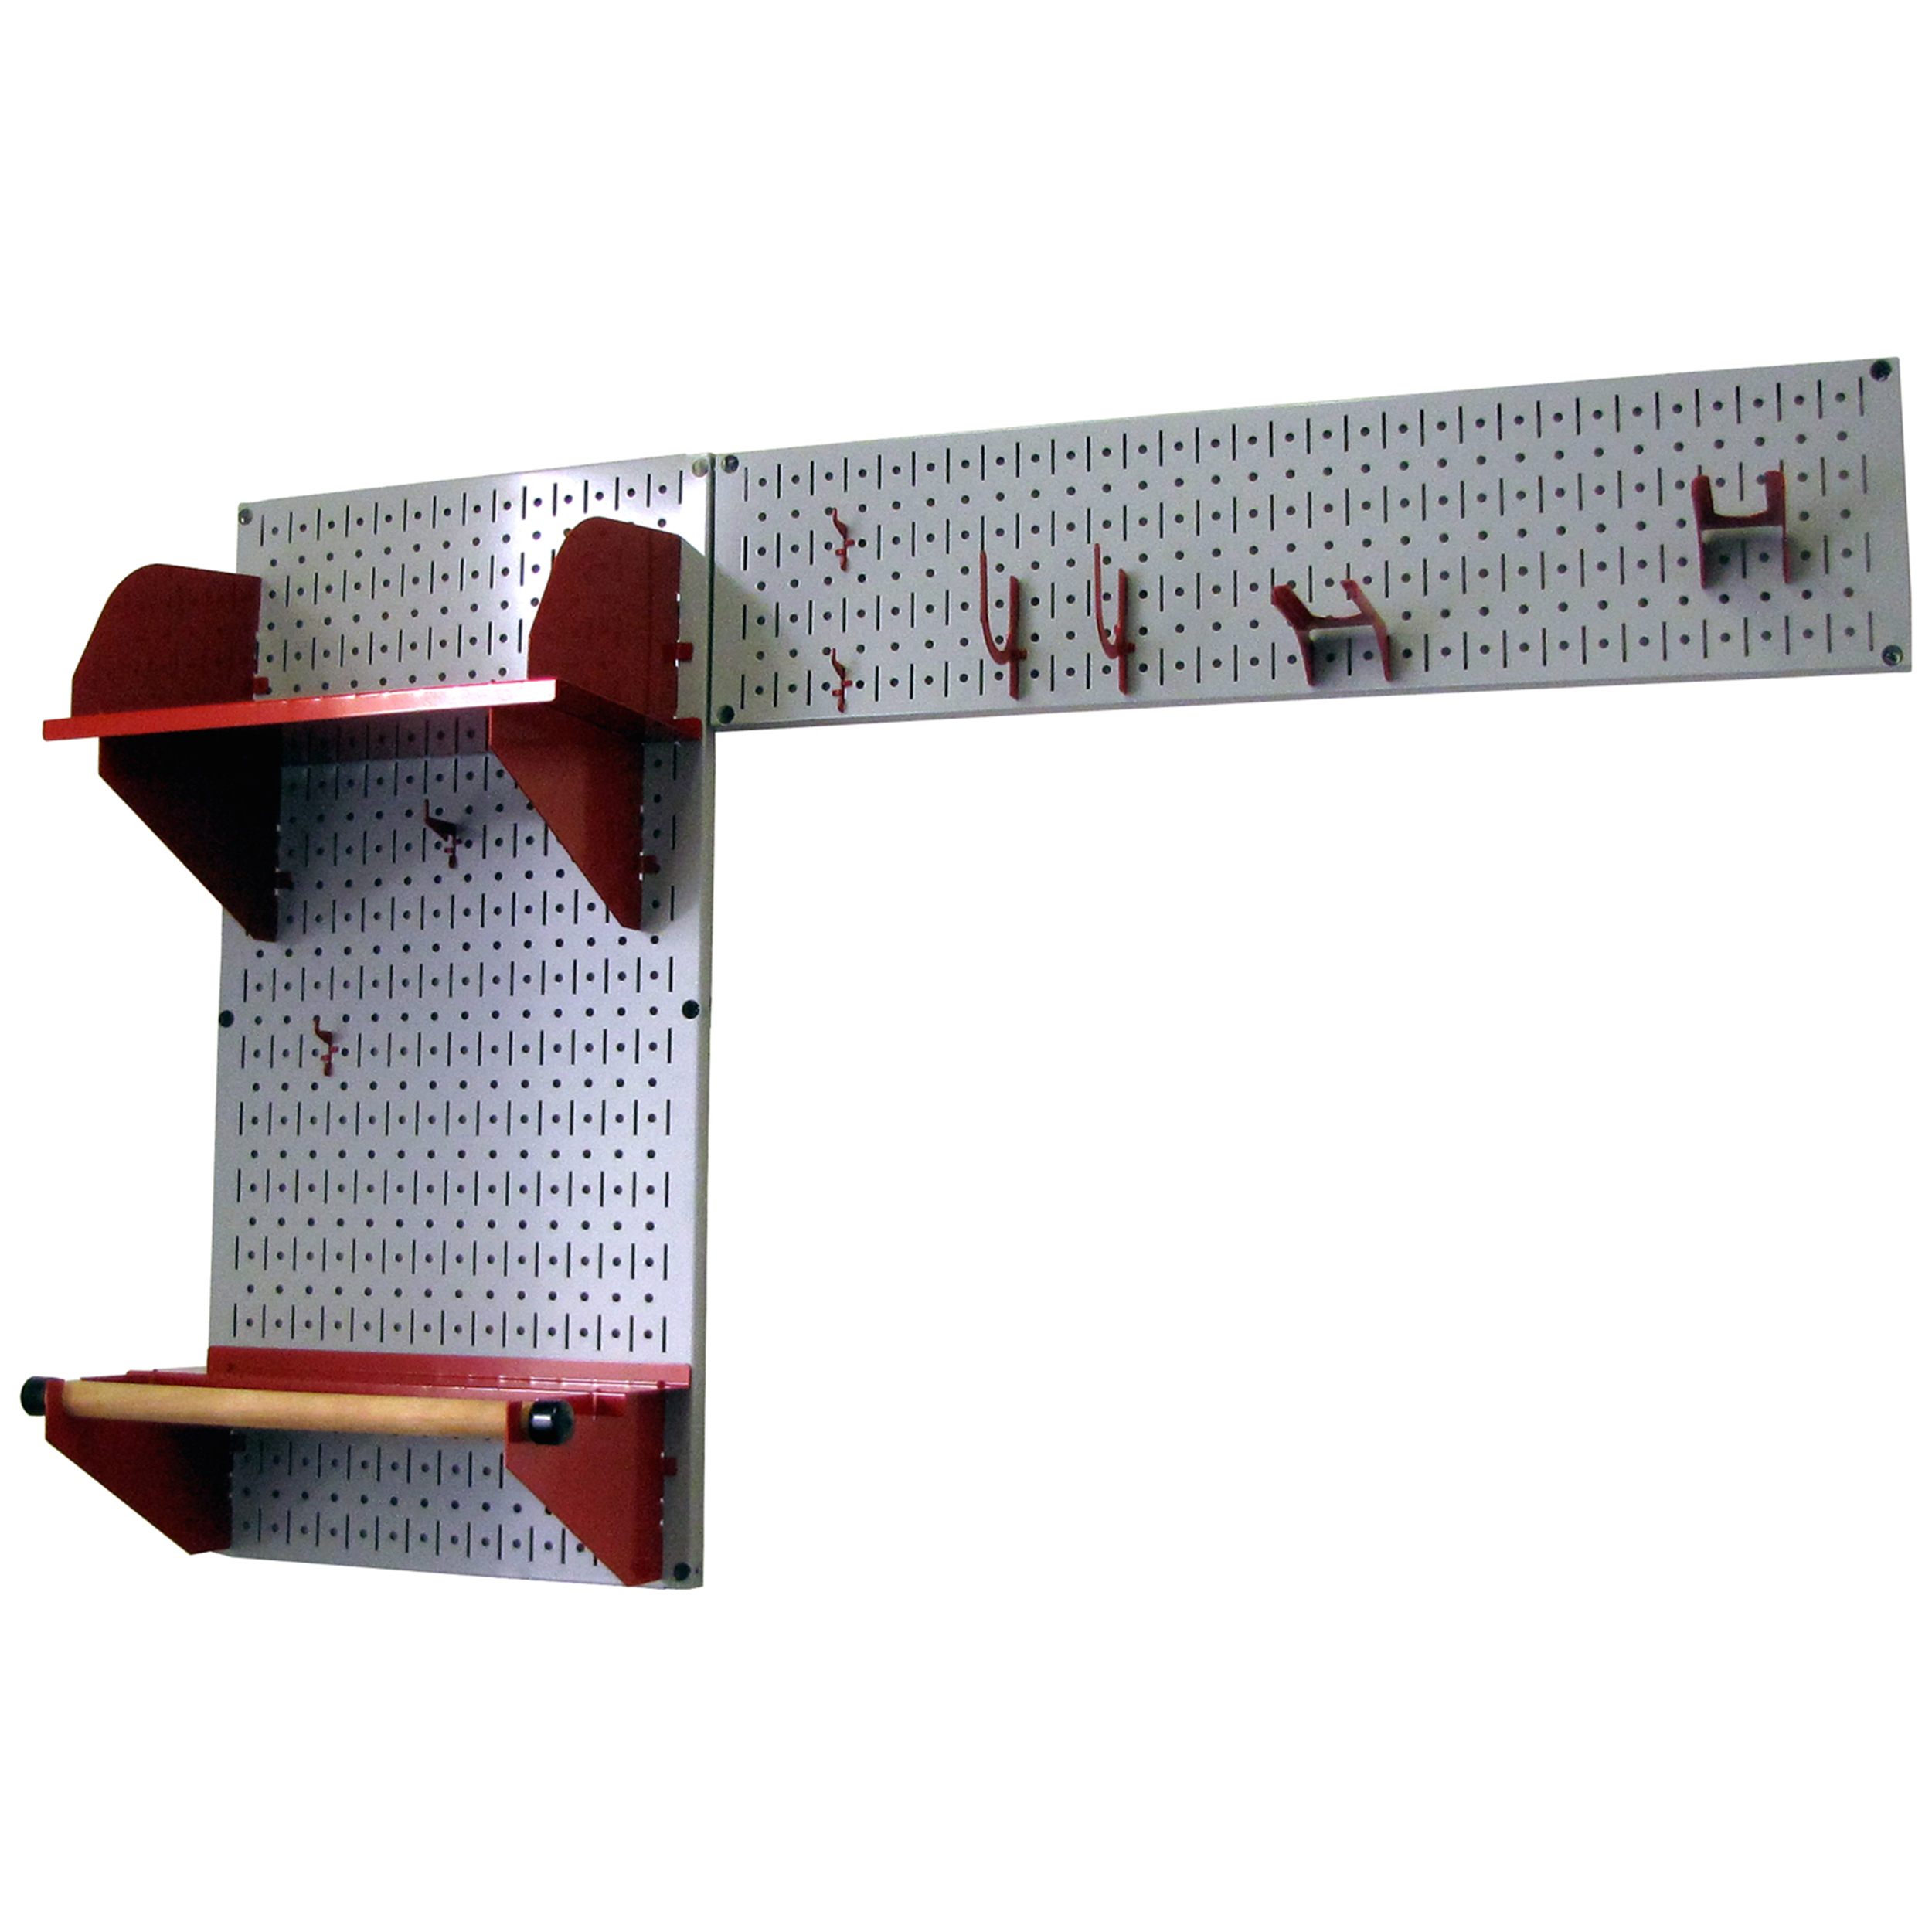 Pegboard Garden Tool Board Organizer with Gray Pegboard and Red Accessories